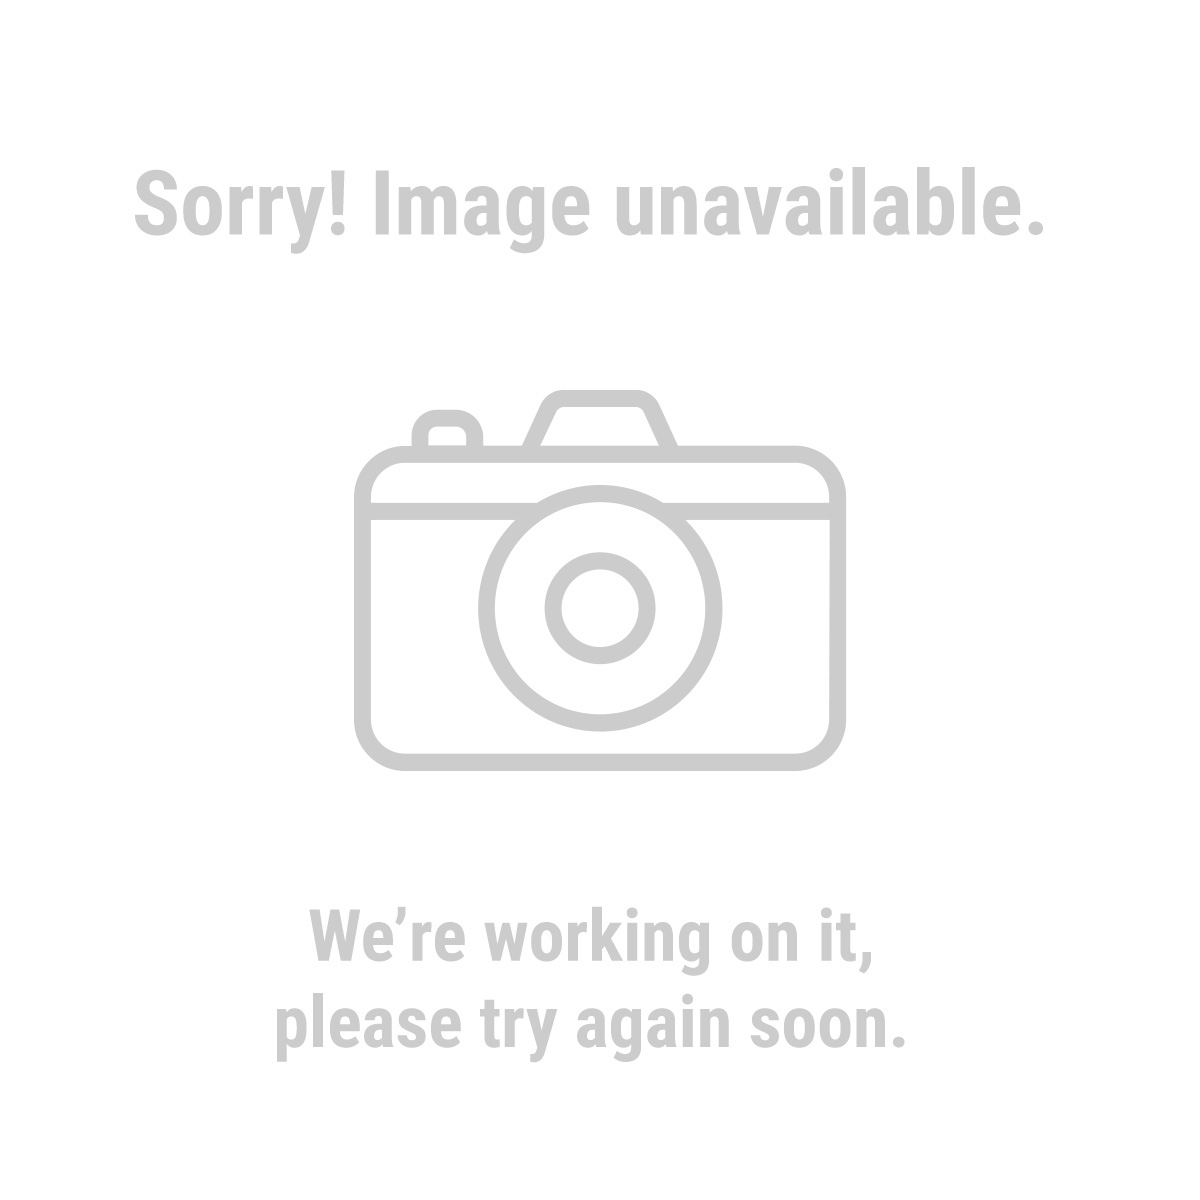 Warrior® 68828 58 Piece Quick Change Drill and Driver Bit Set